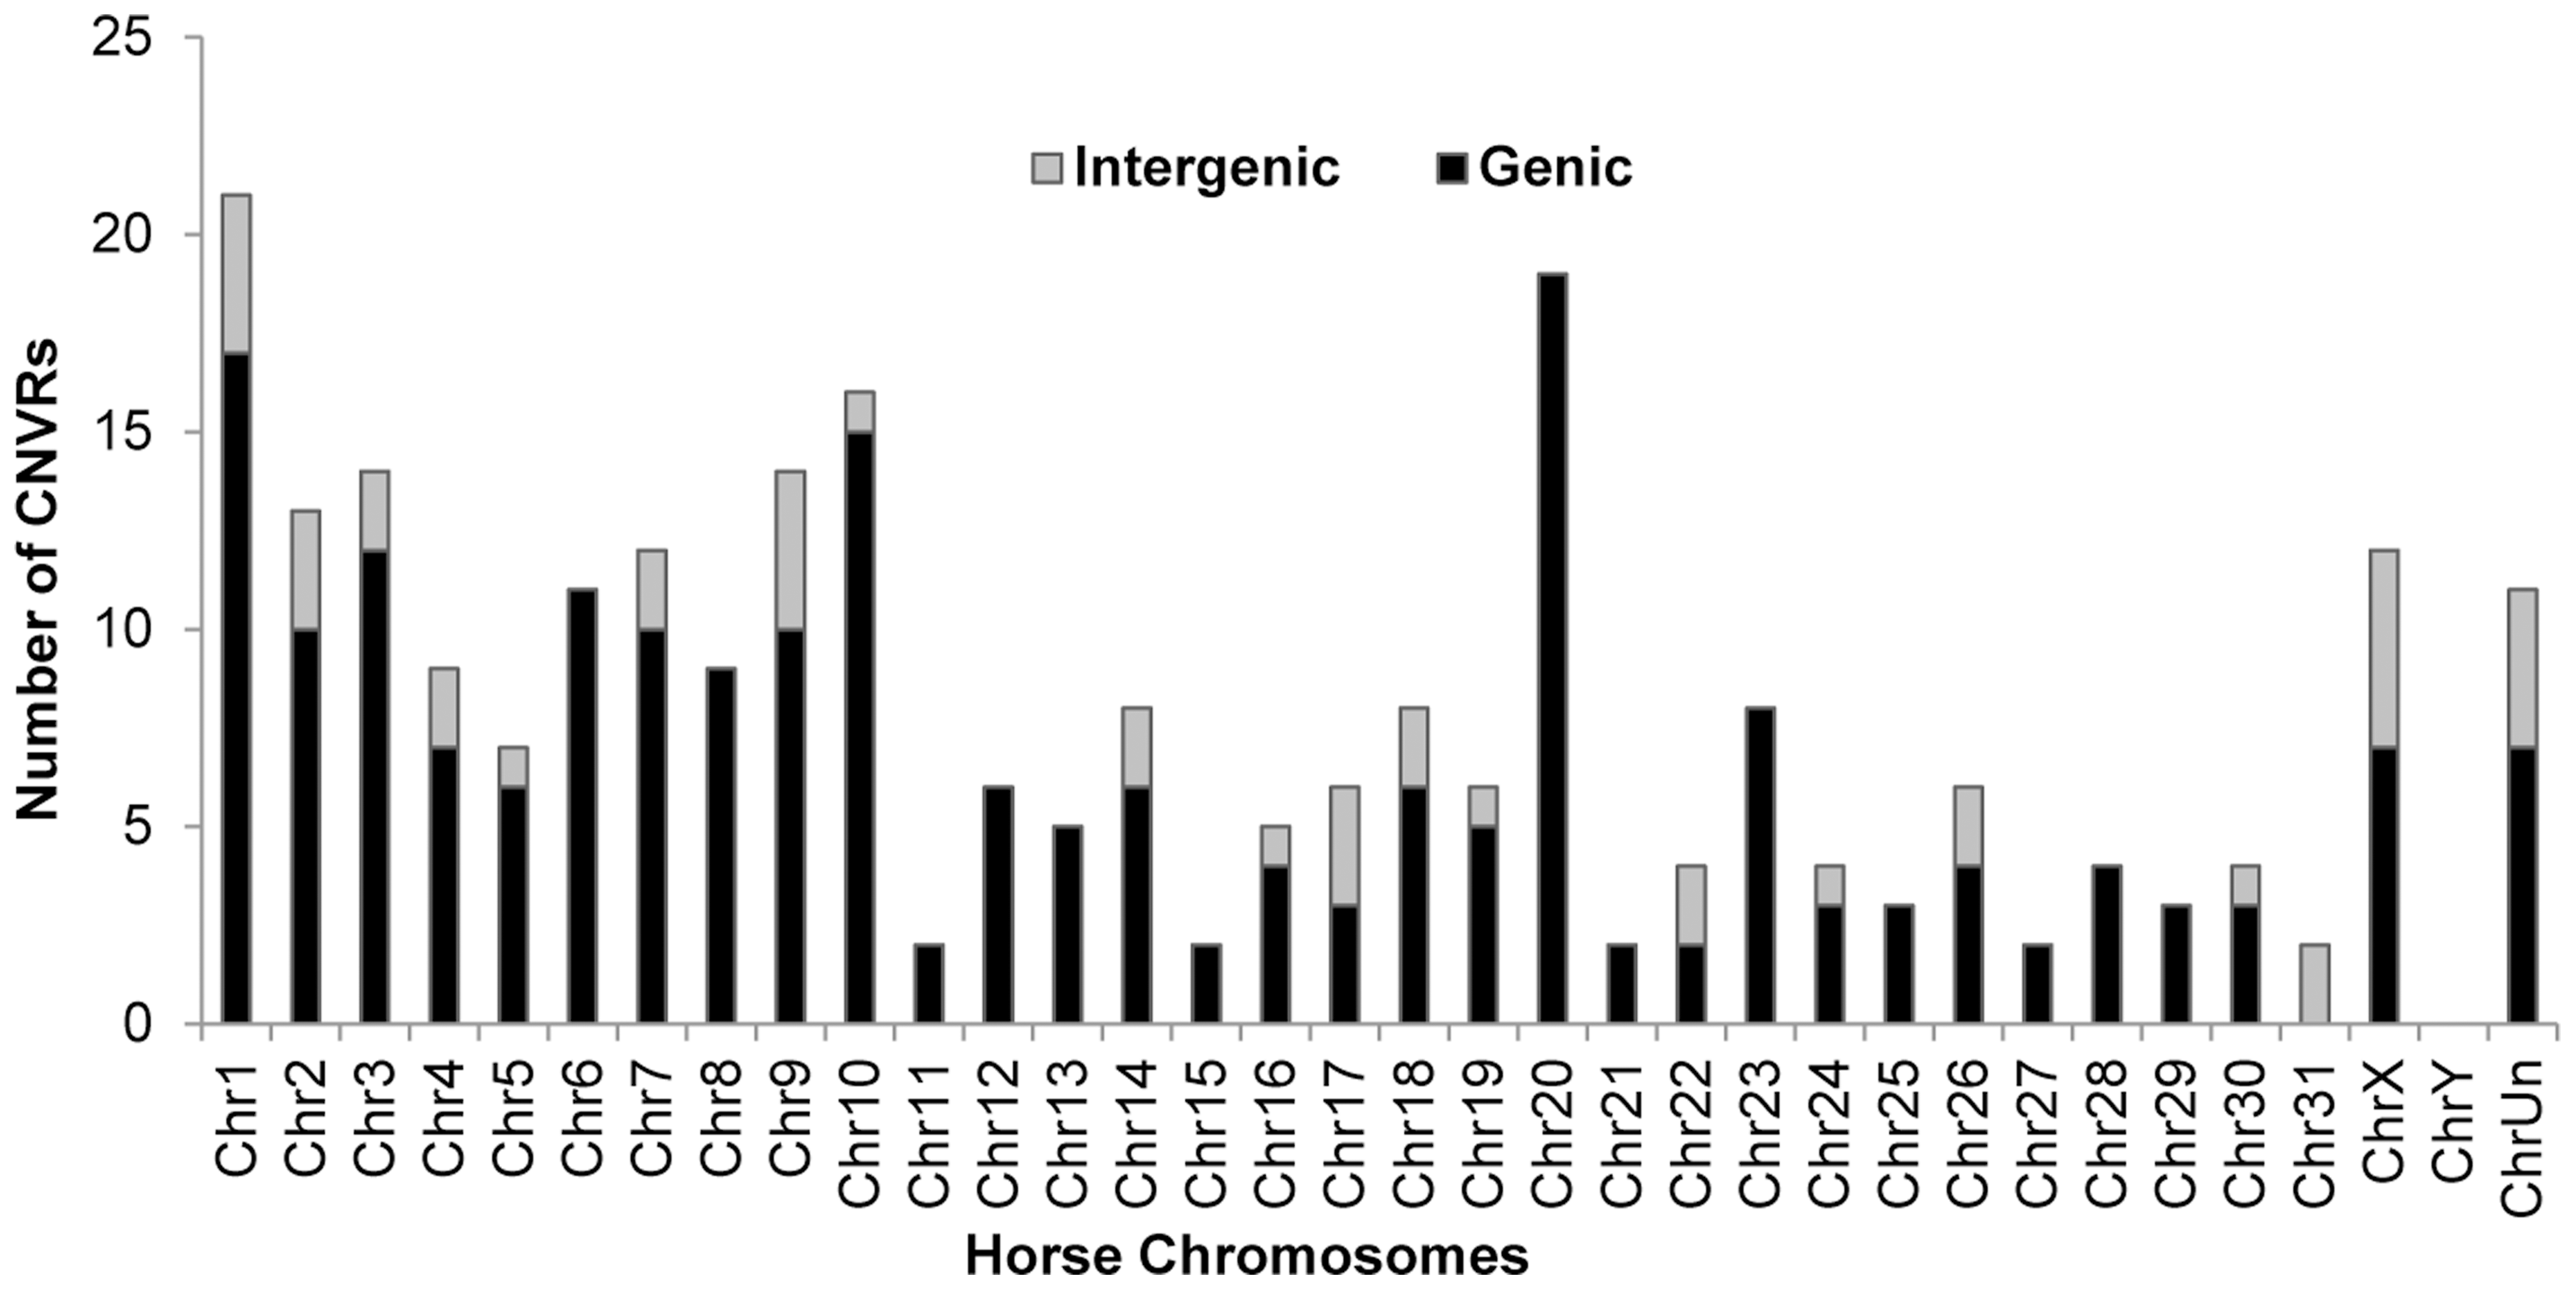 Chromosome-wise distribution of genic and intergenic CNVRs in the horse genome.